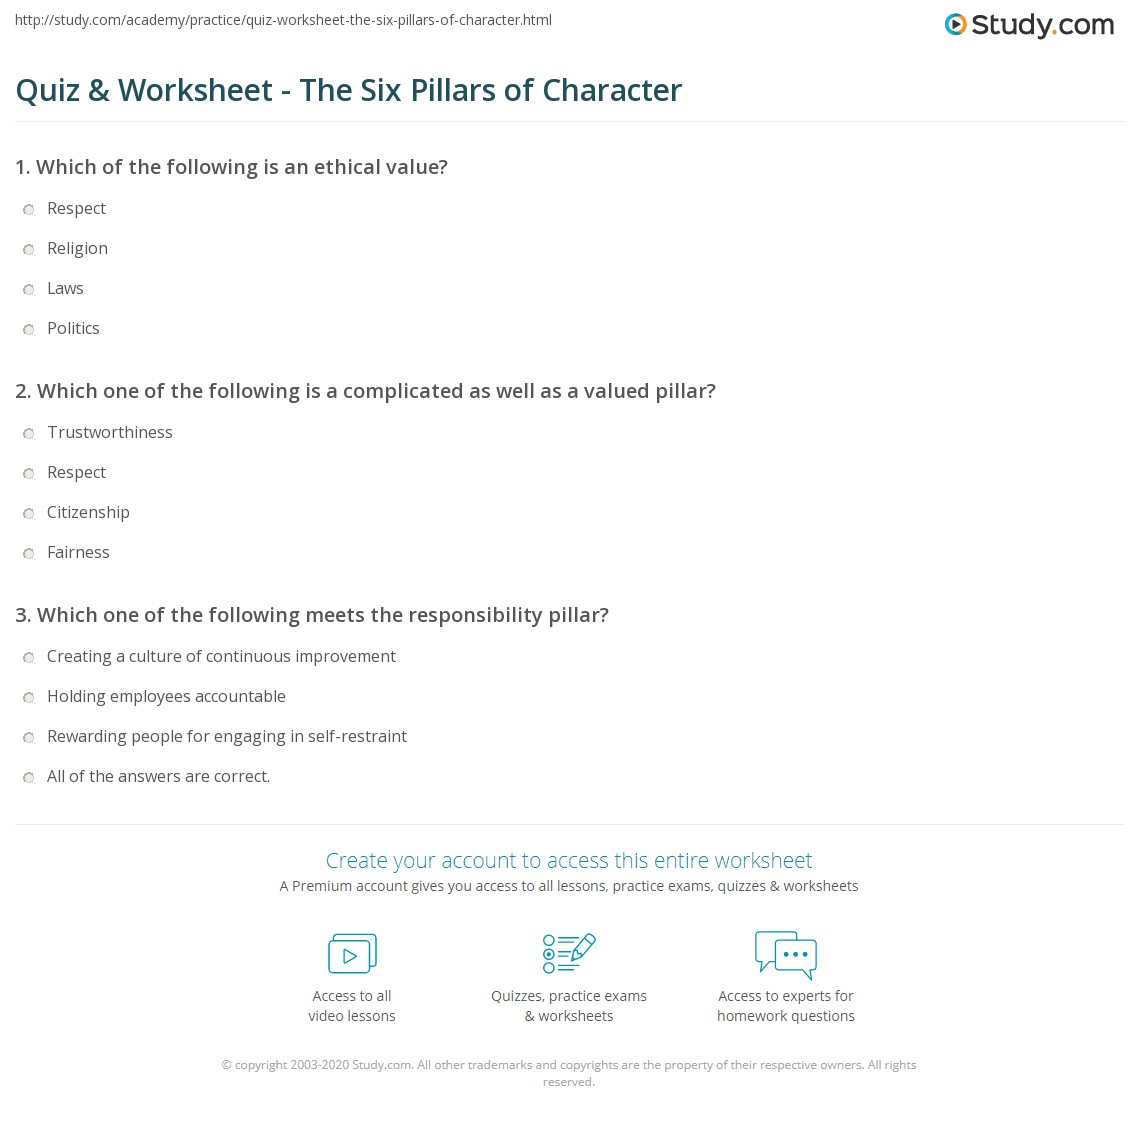 Printables Six Pillars Of Character Worksheets belief in allah tawheed notebooking pages imans home school as part of our islamic studies we are covering the six pillars eemaan detail working from set books by muh